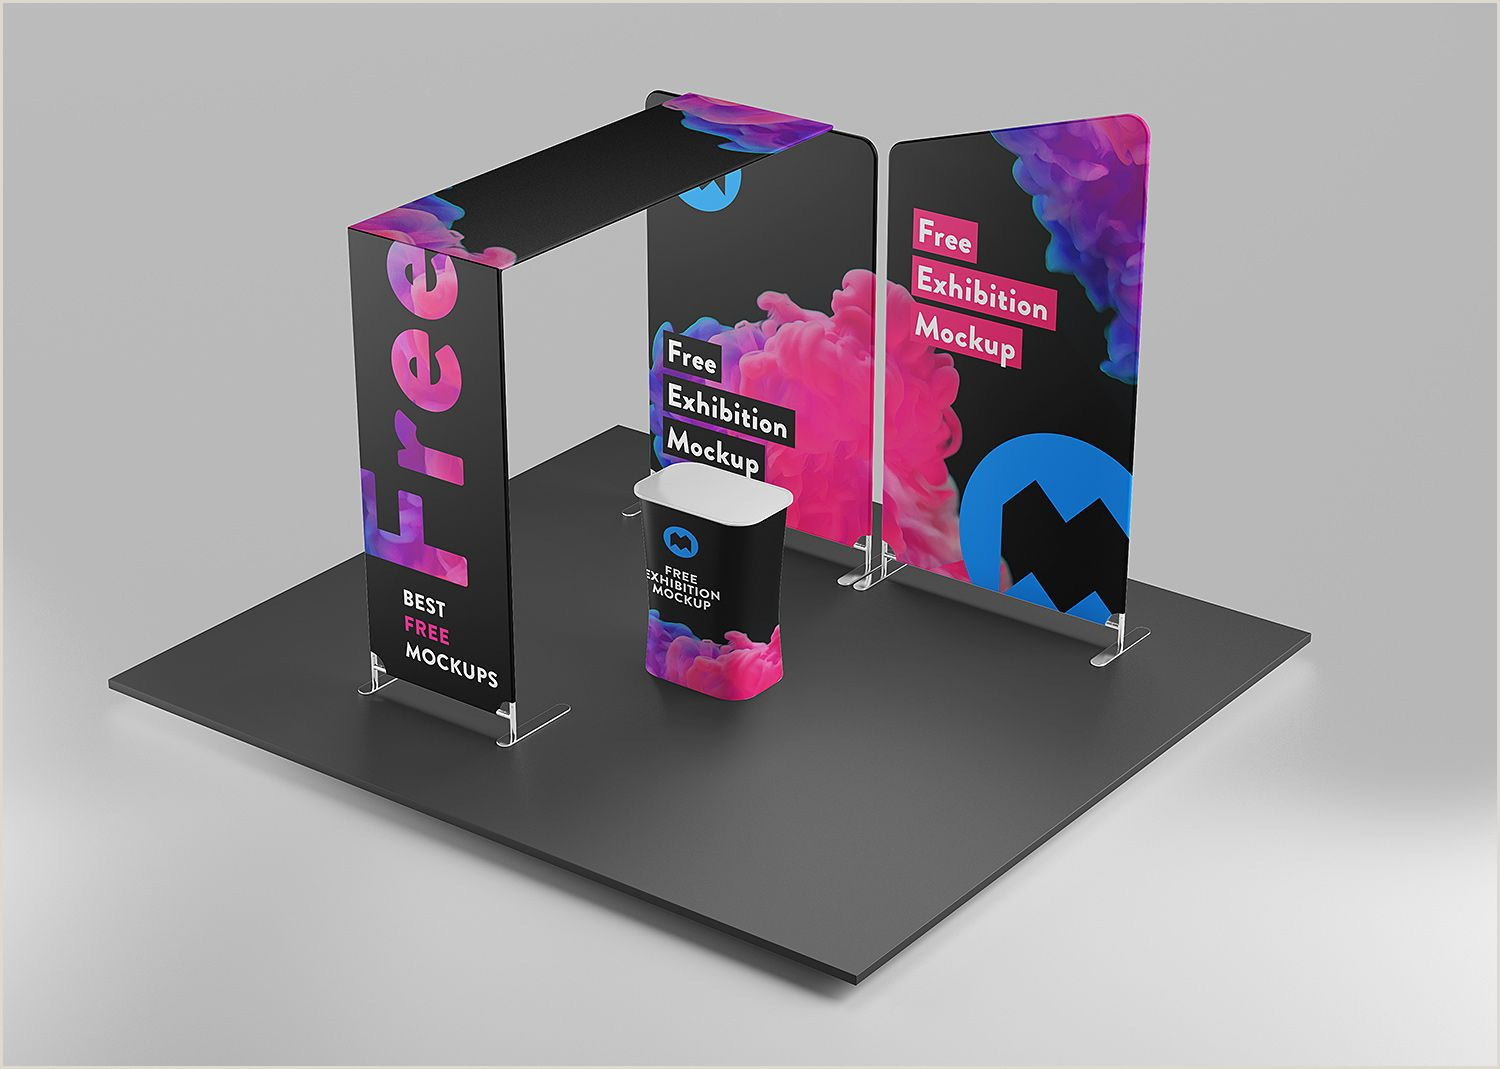 Stand Up Display Signs Free Exhibition Mockup Free Mockup